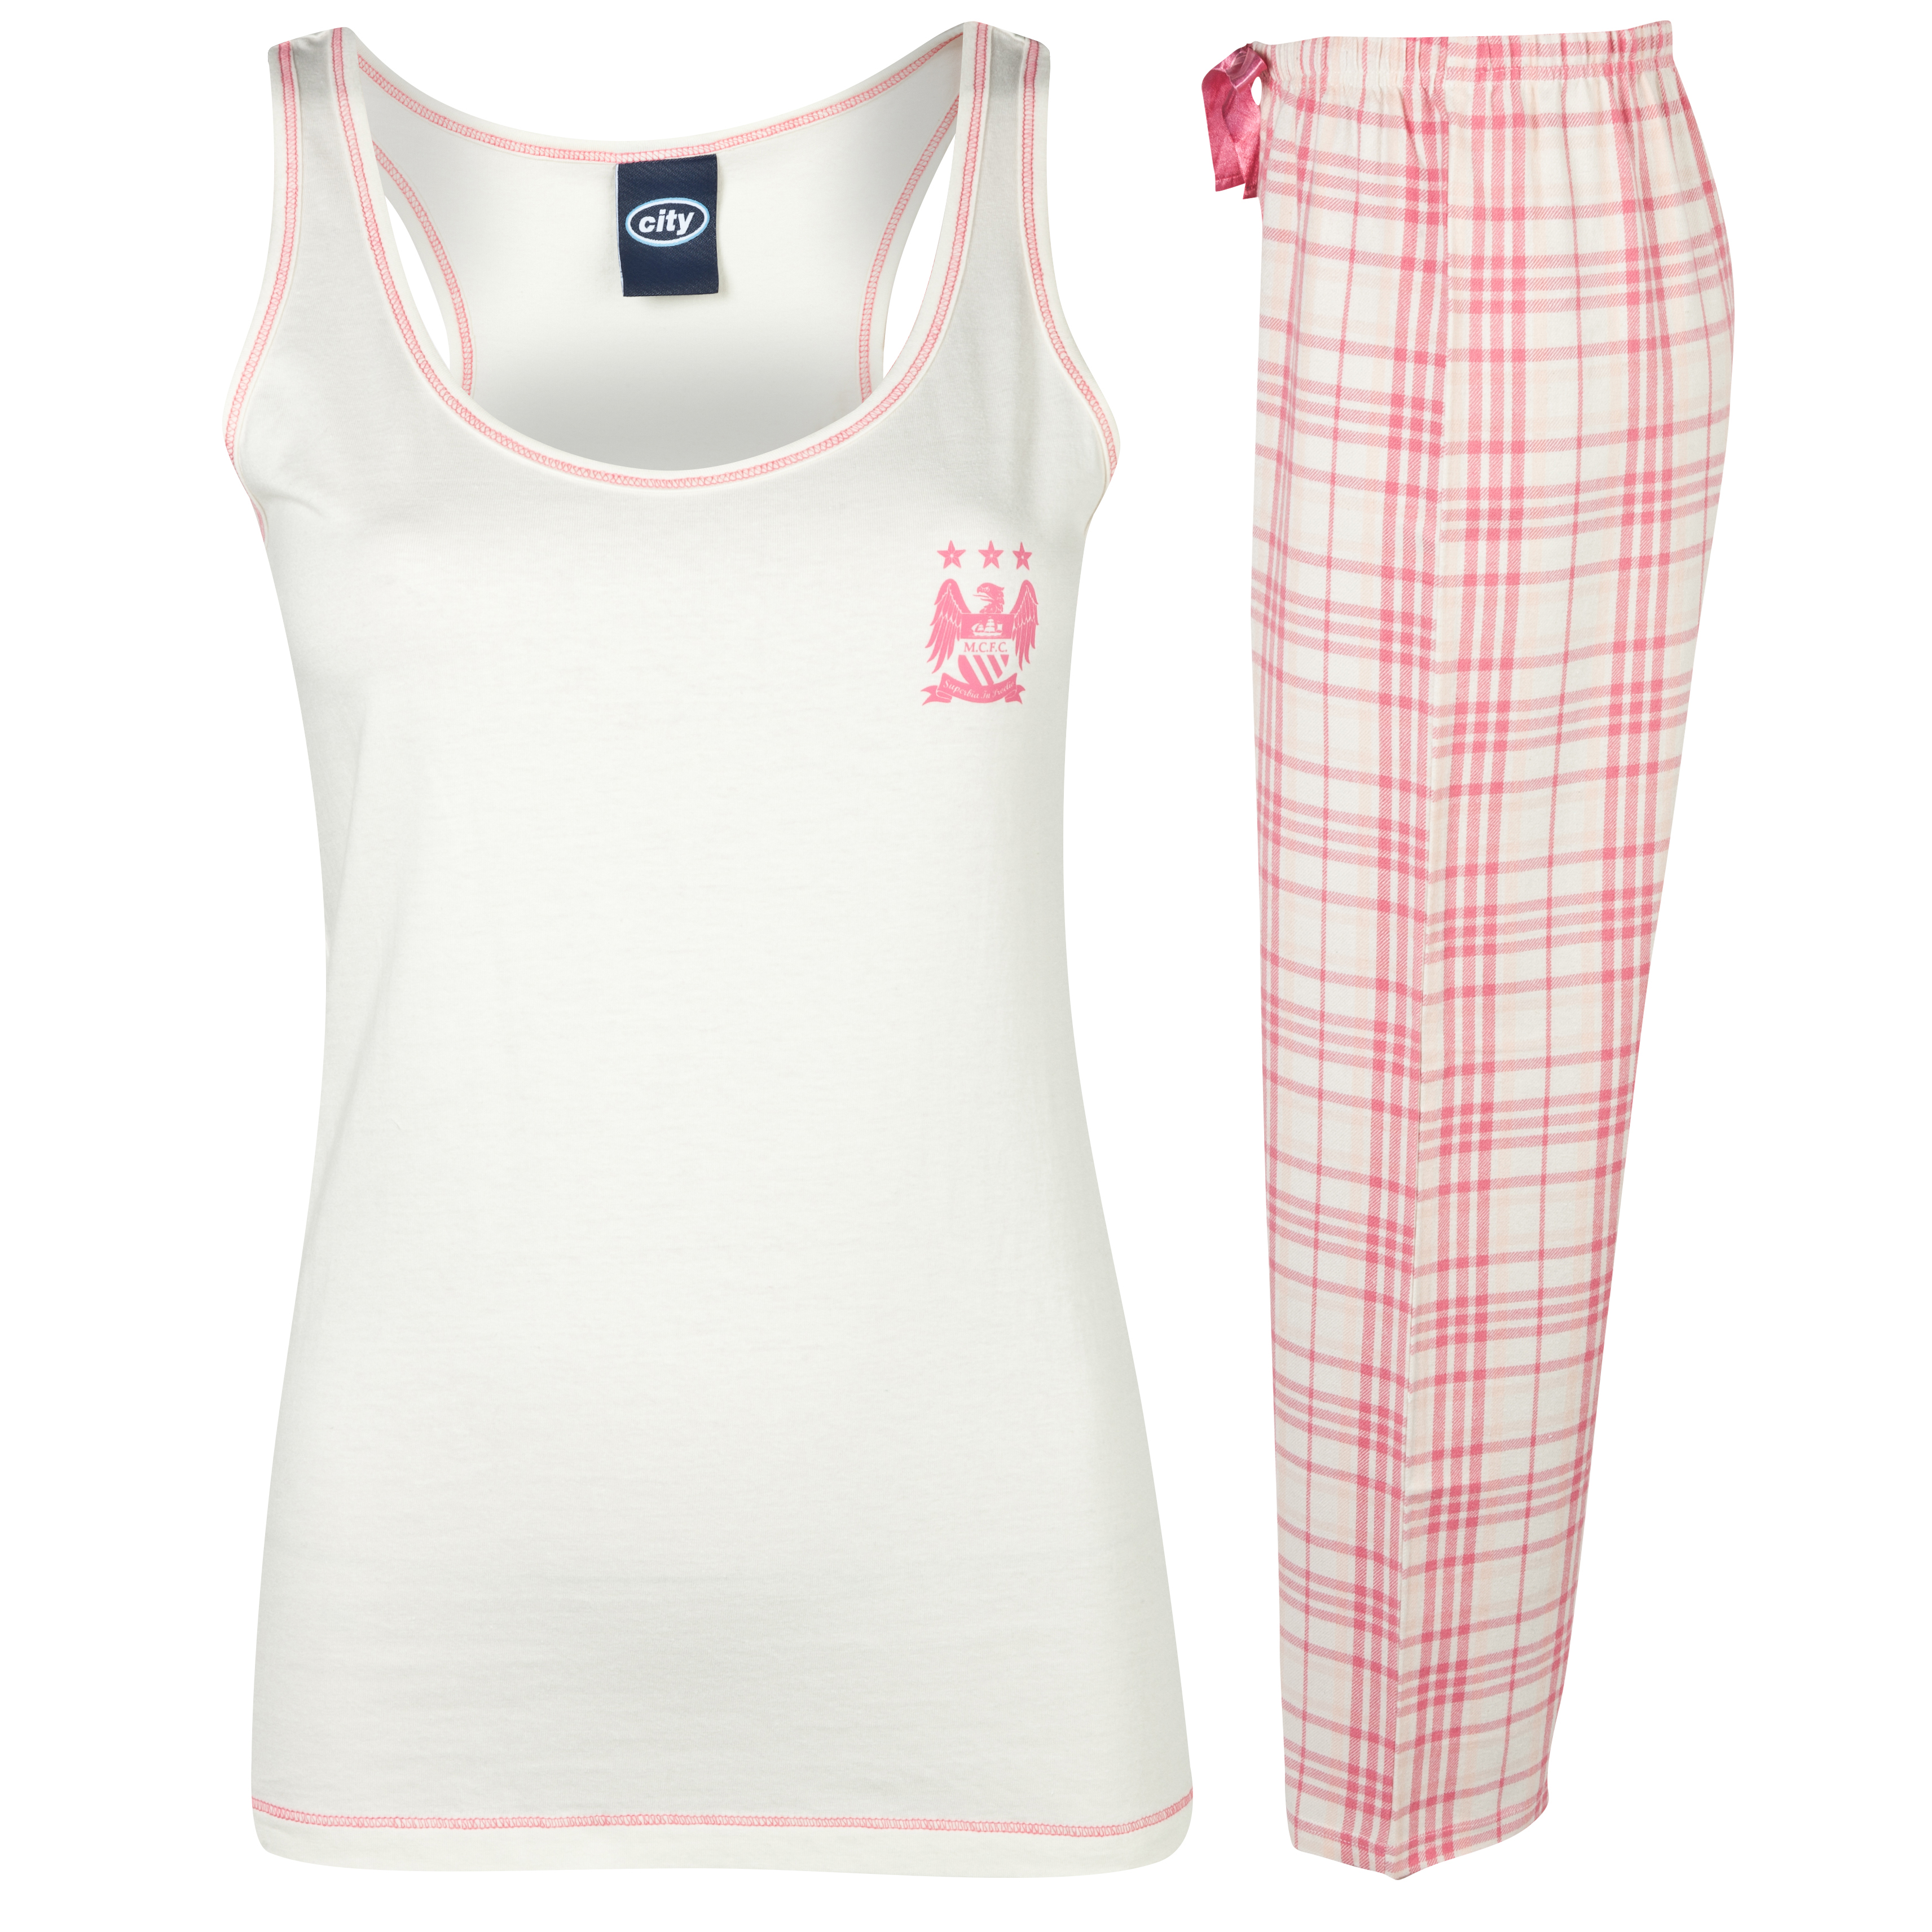 Manchester City Check Pyjamas Womens Pink